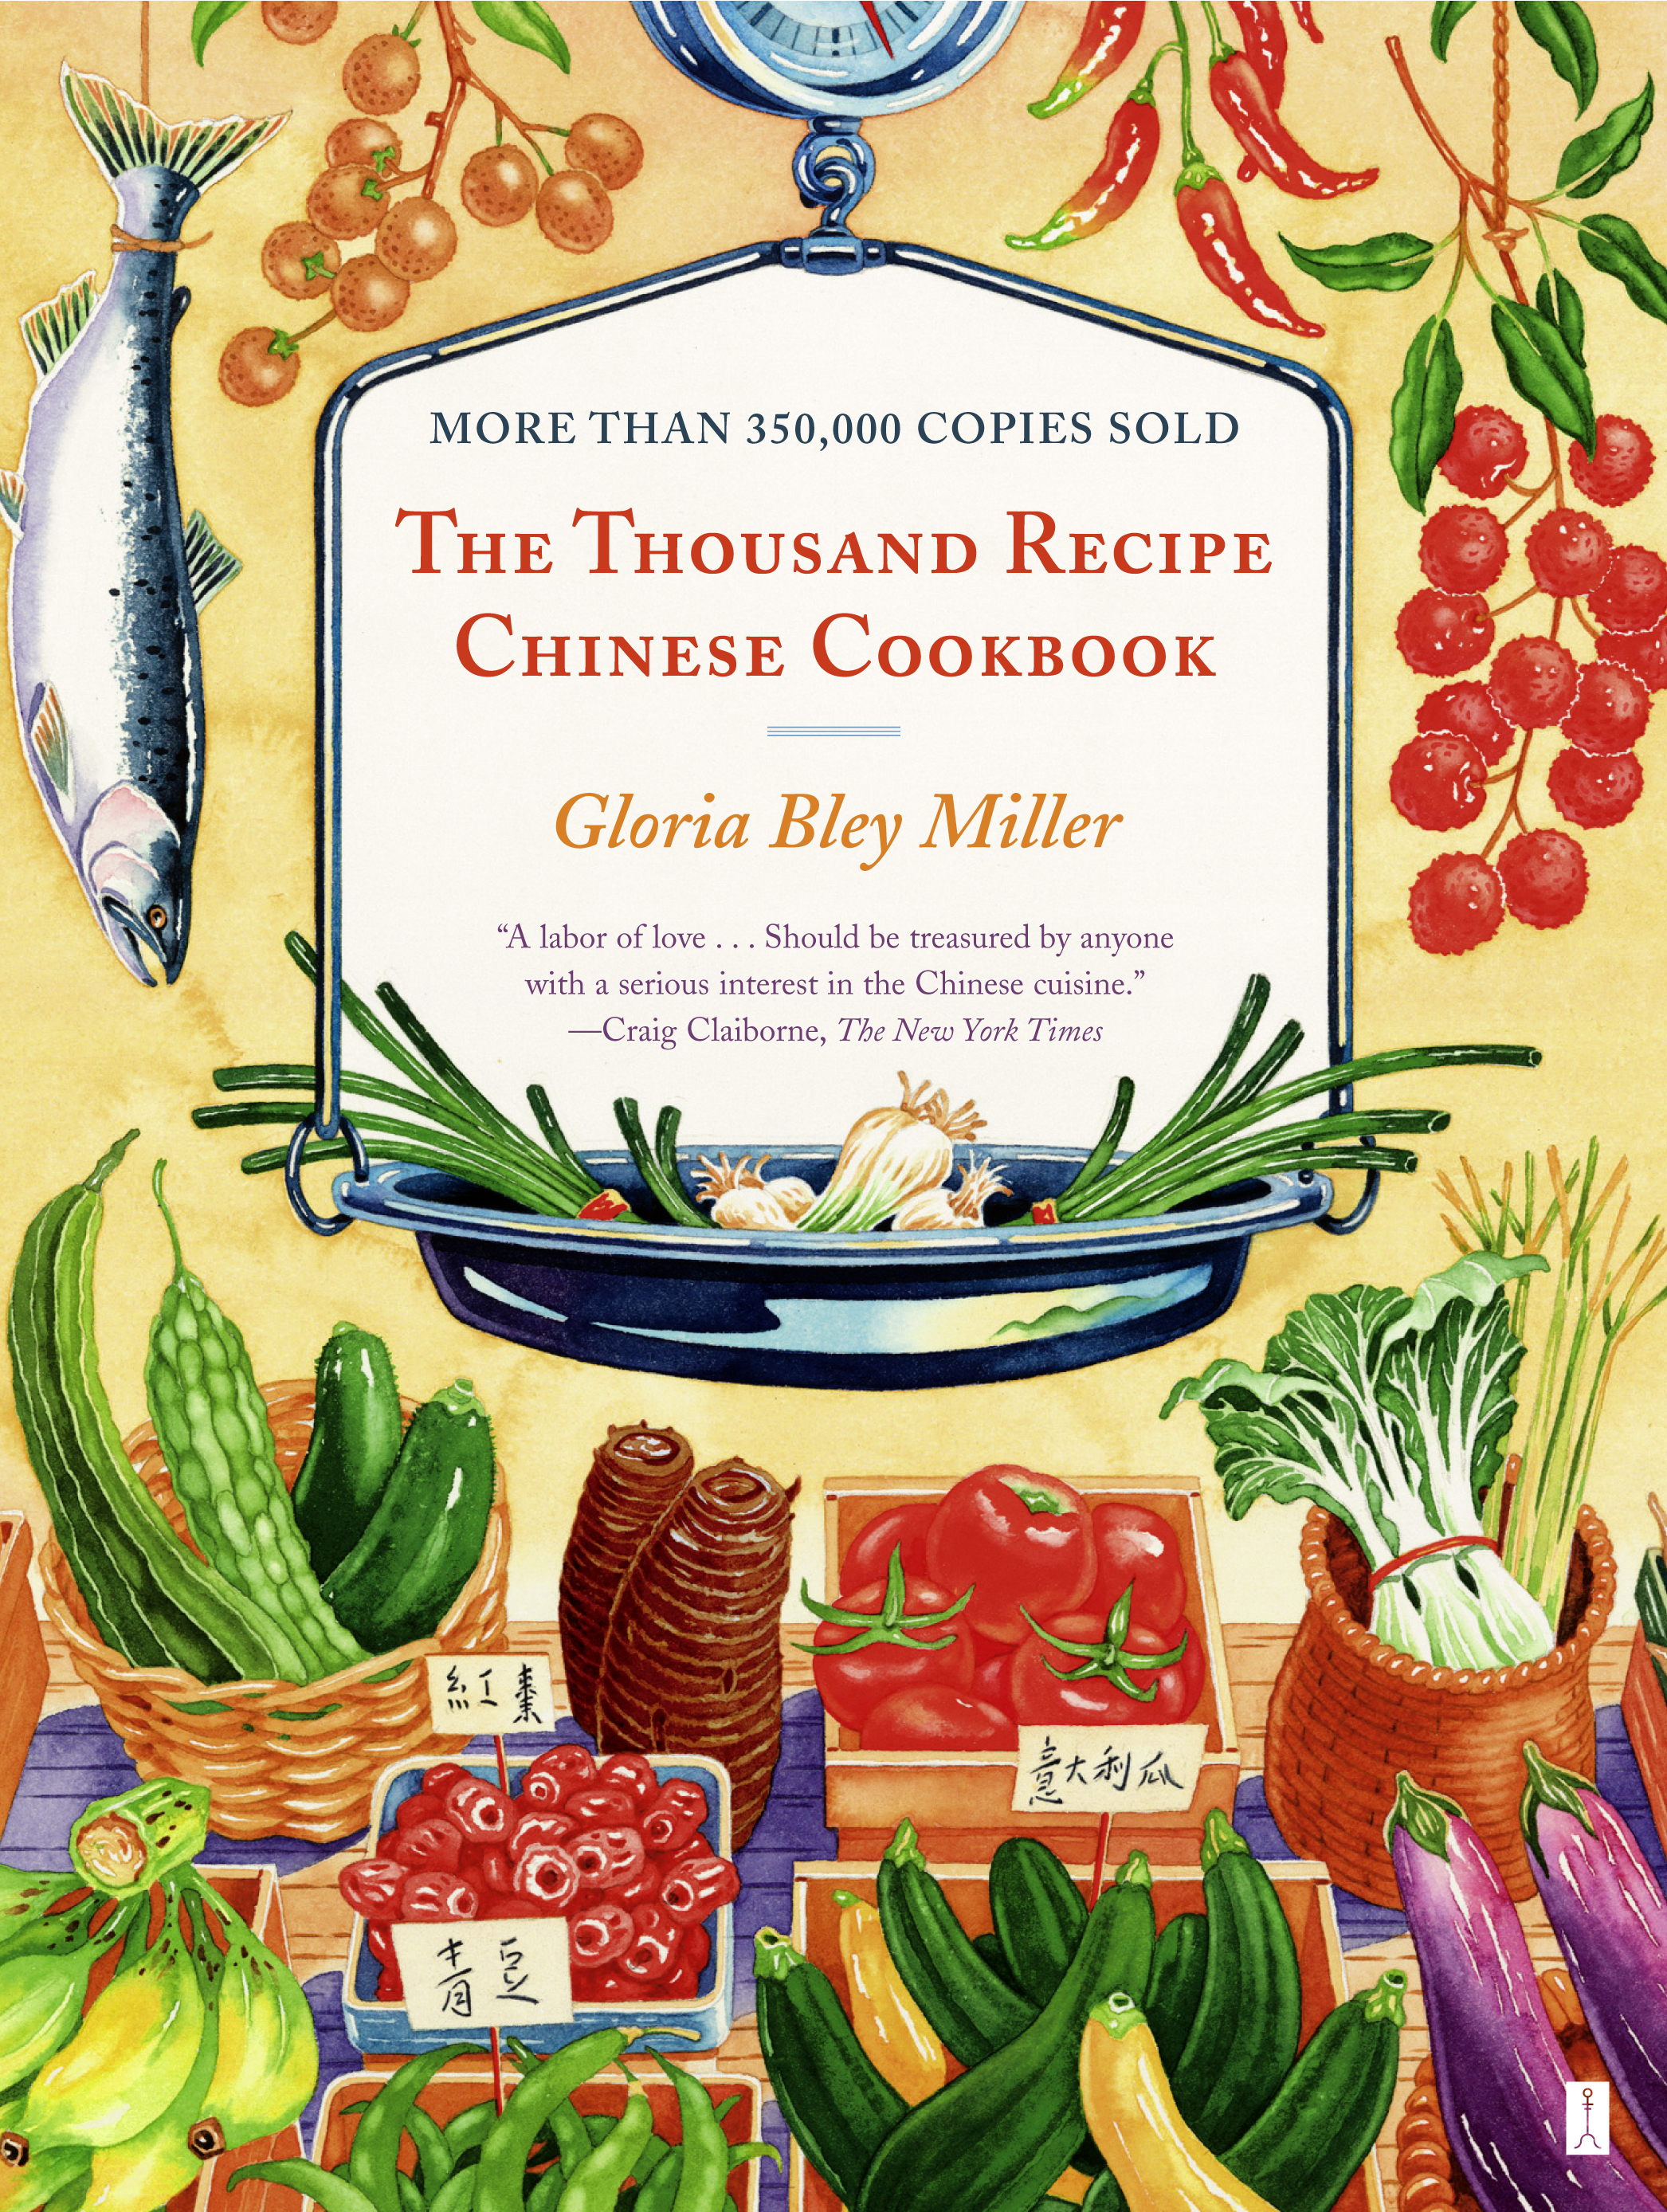 Thousand recipe chinese cookbook book by gloria bley miller cvr9780671509934 9780671509934 hr thousand recipe chinese cookbook forumfinder Choice Image